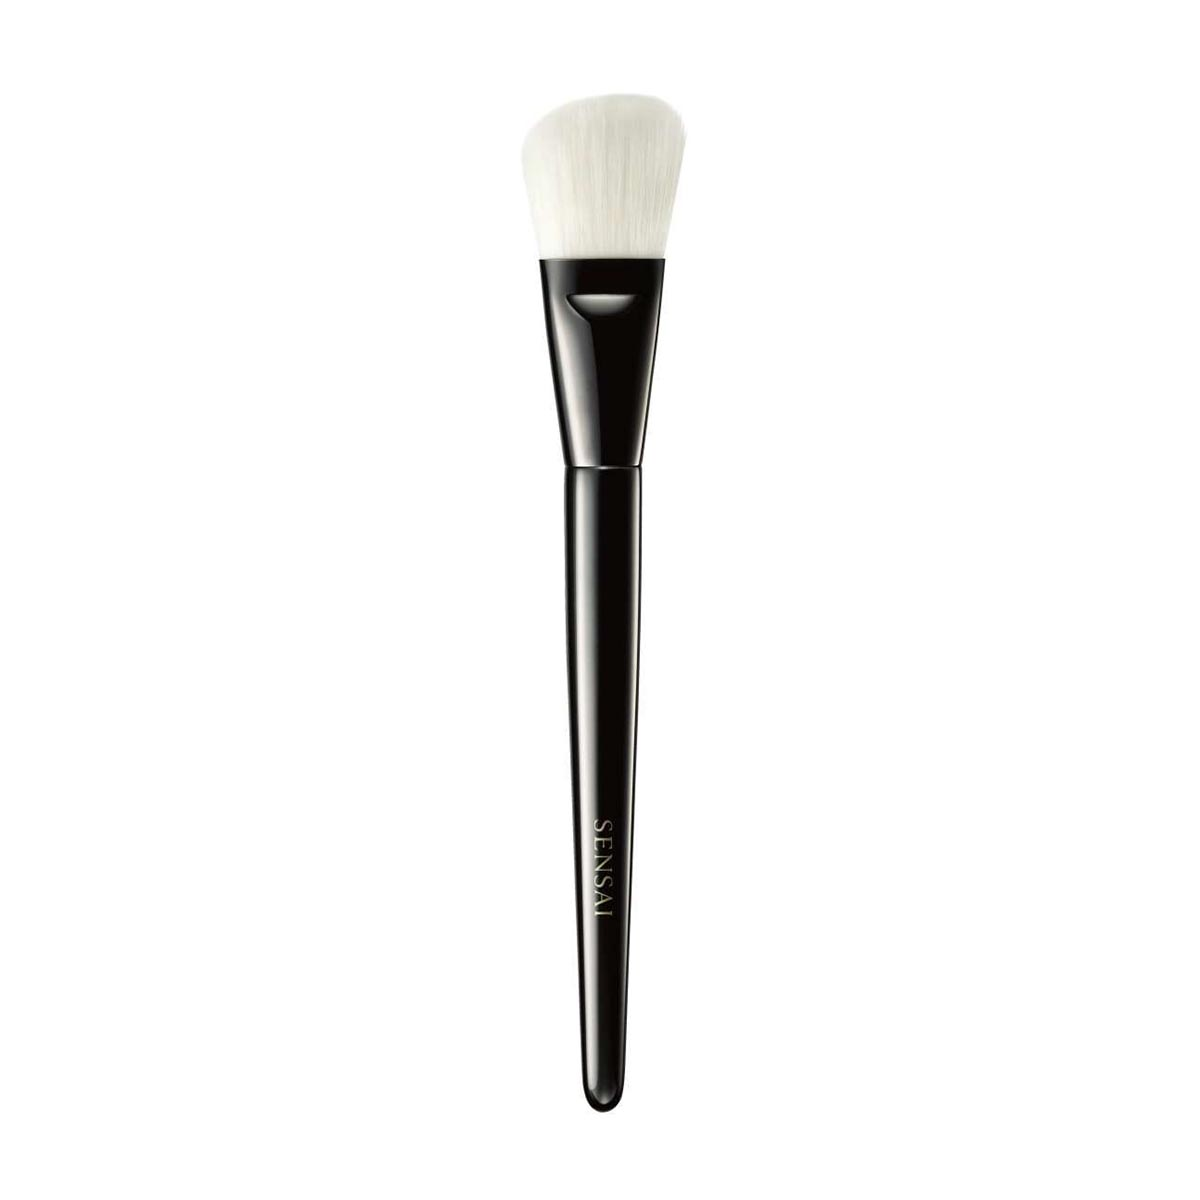 Kanebo sensai liquid foundation brush 1 unidad